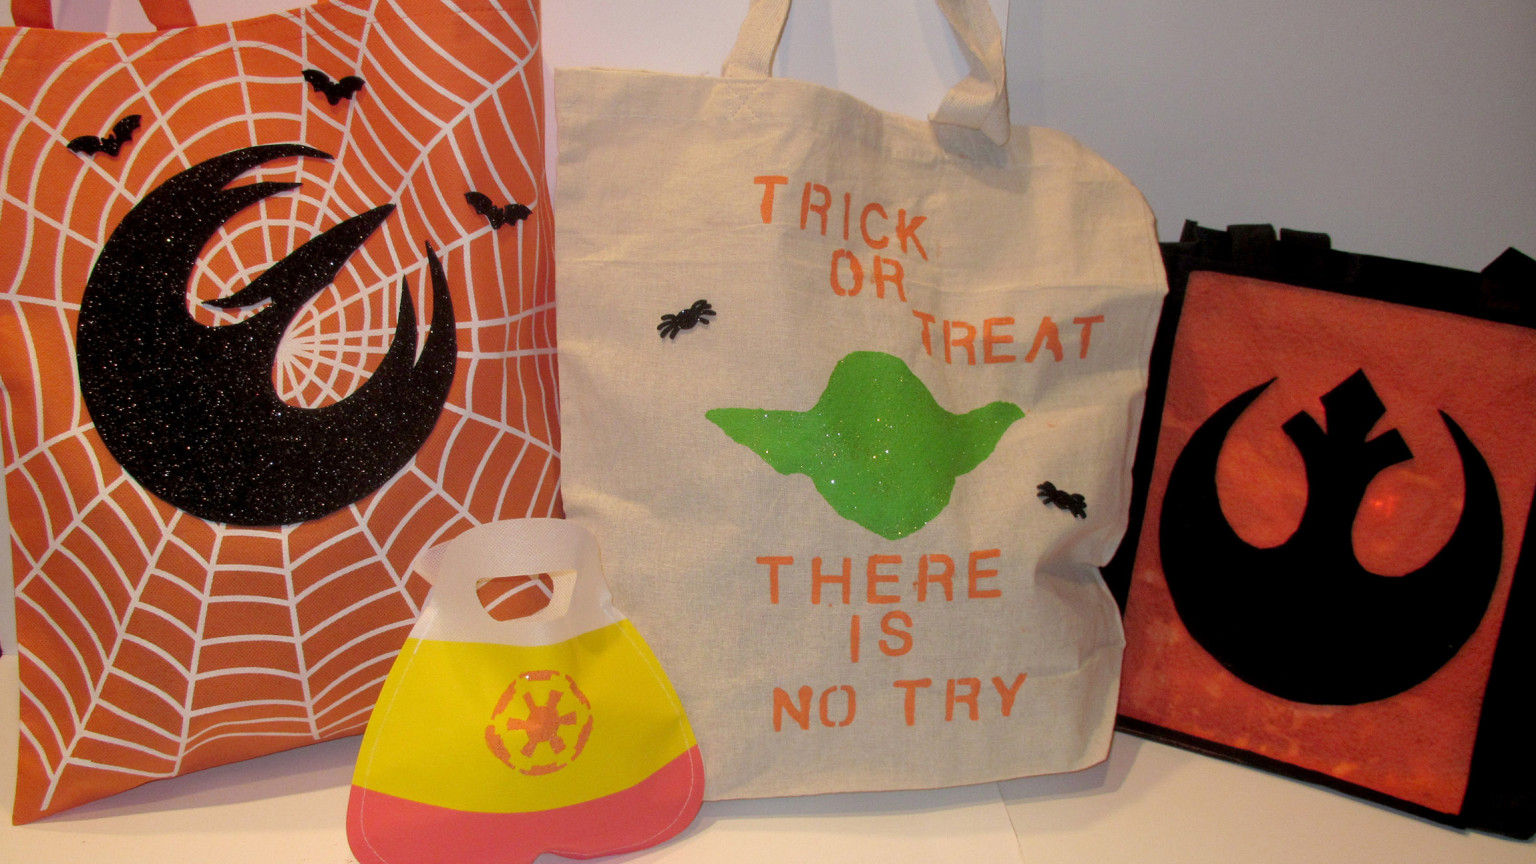 Diy Halloween Trick Or Treat Bags.Diy Star Wars Trick Or Treat Bags Starwars Com